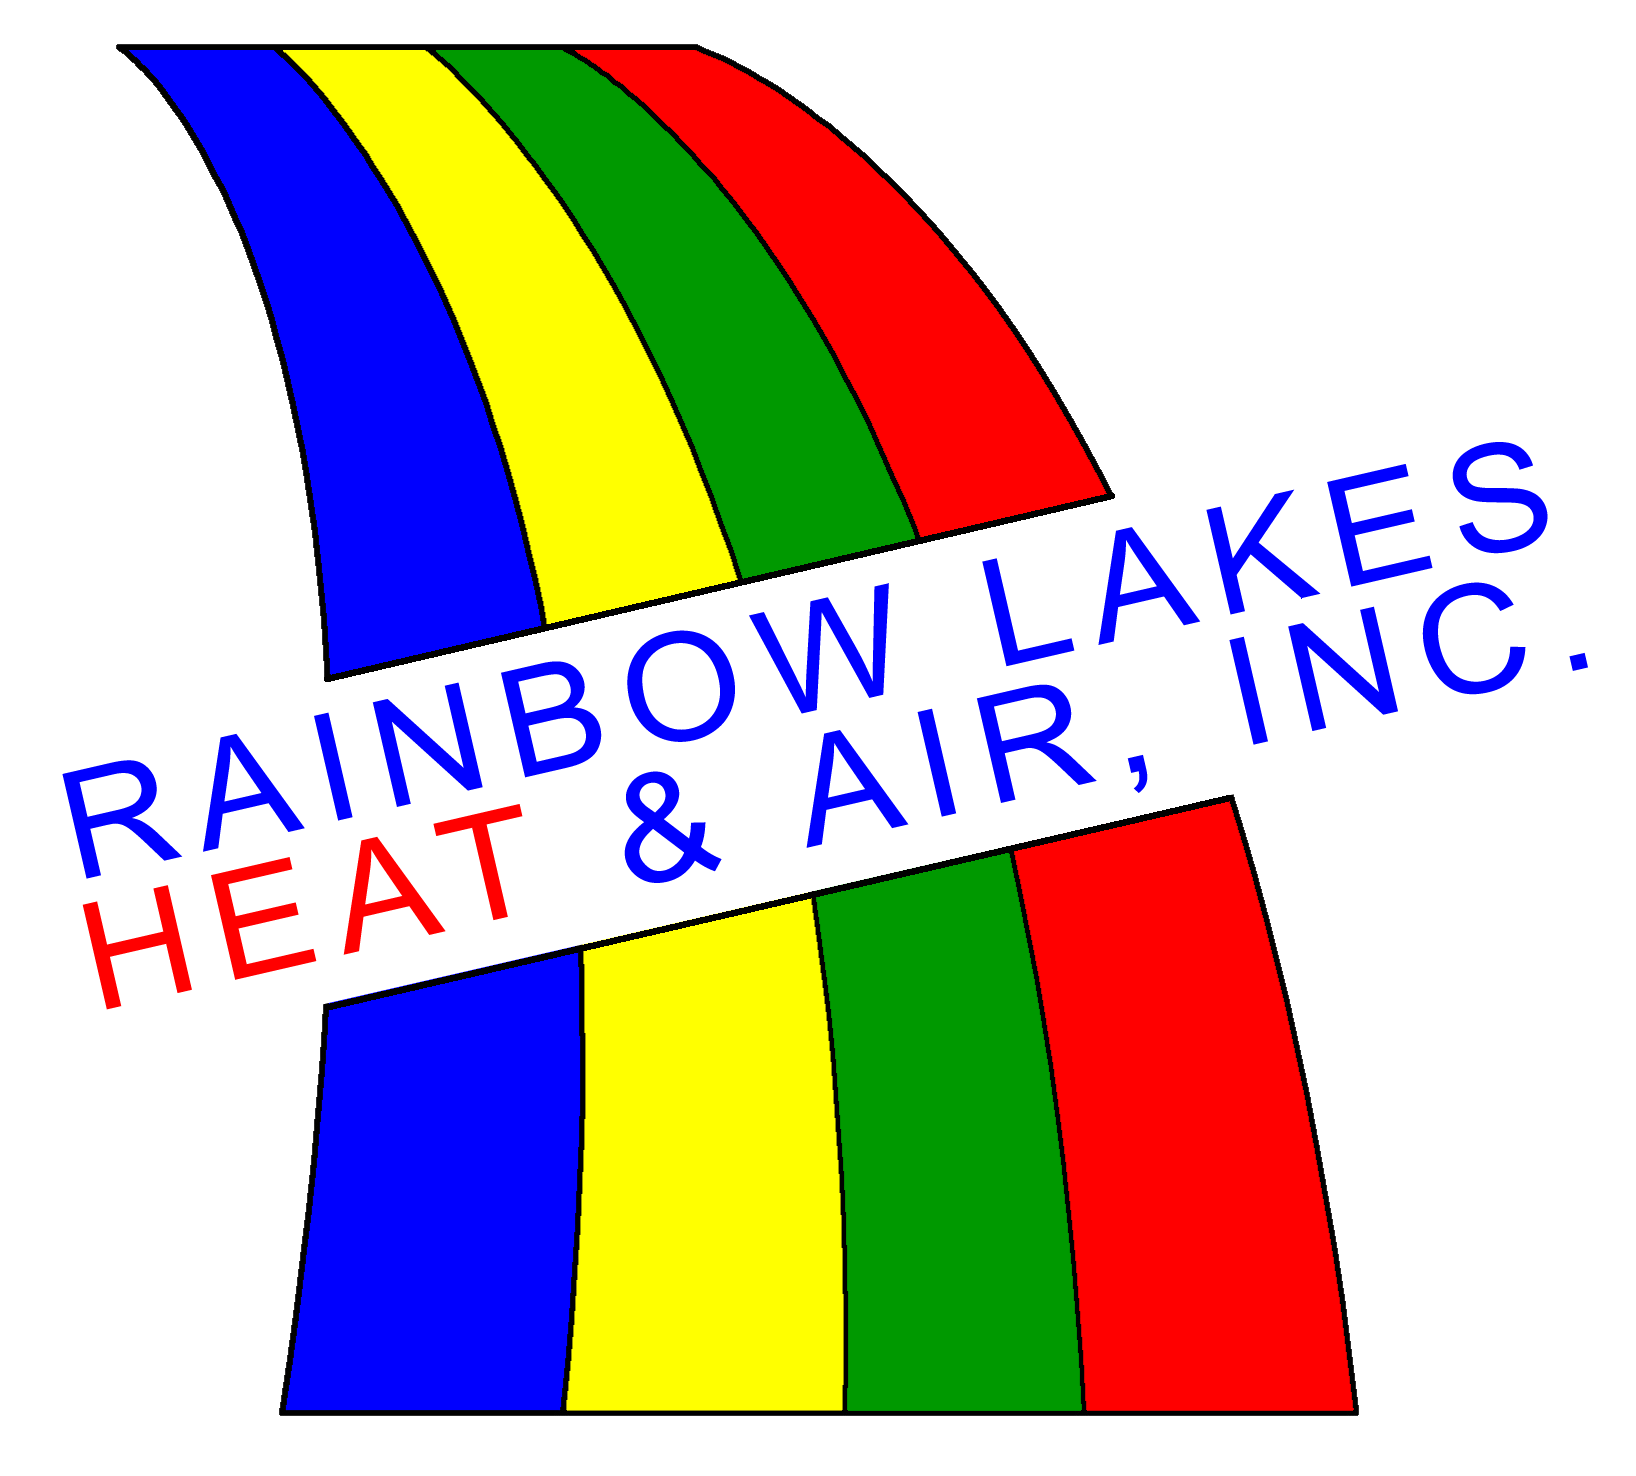 Heat Air Air Conditioner Repair Air Conditioner Service Rainbow Lakes